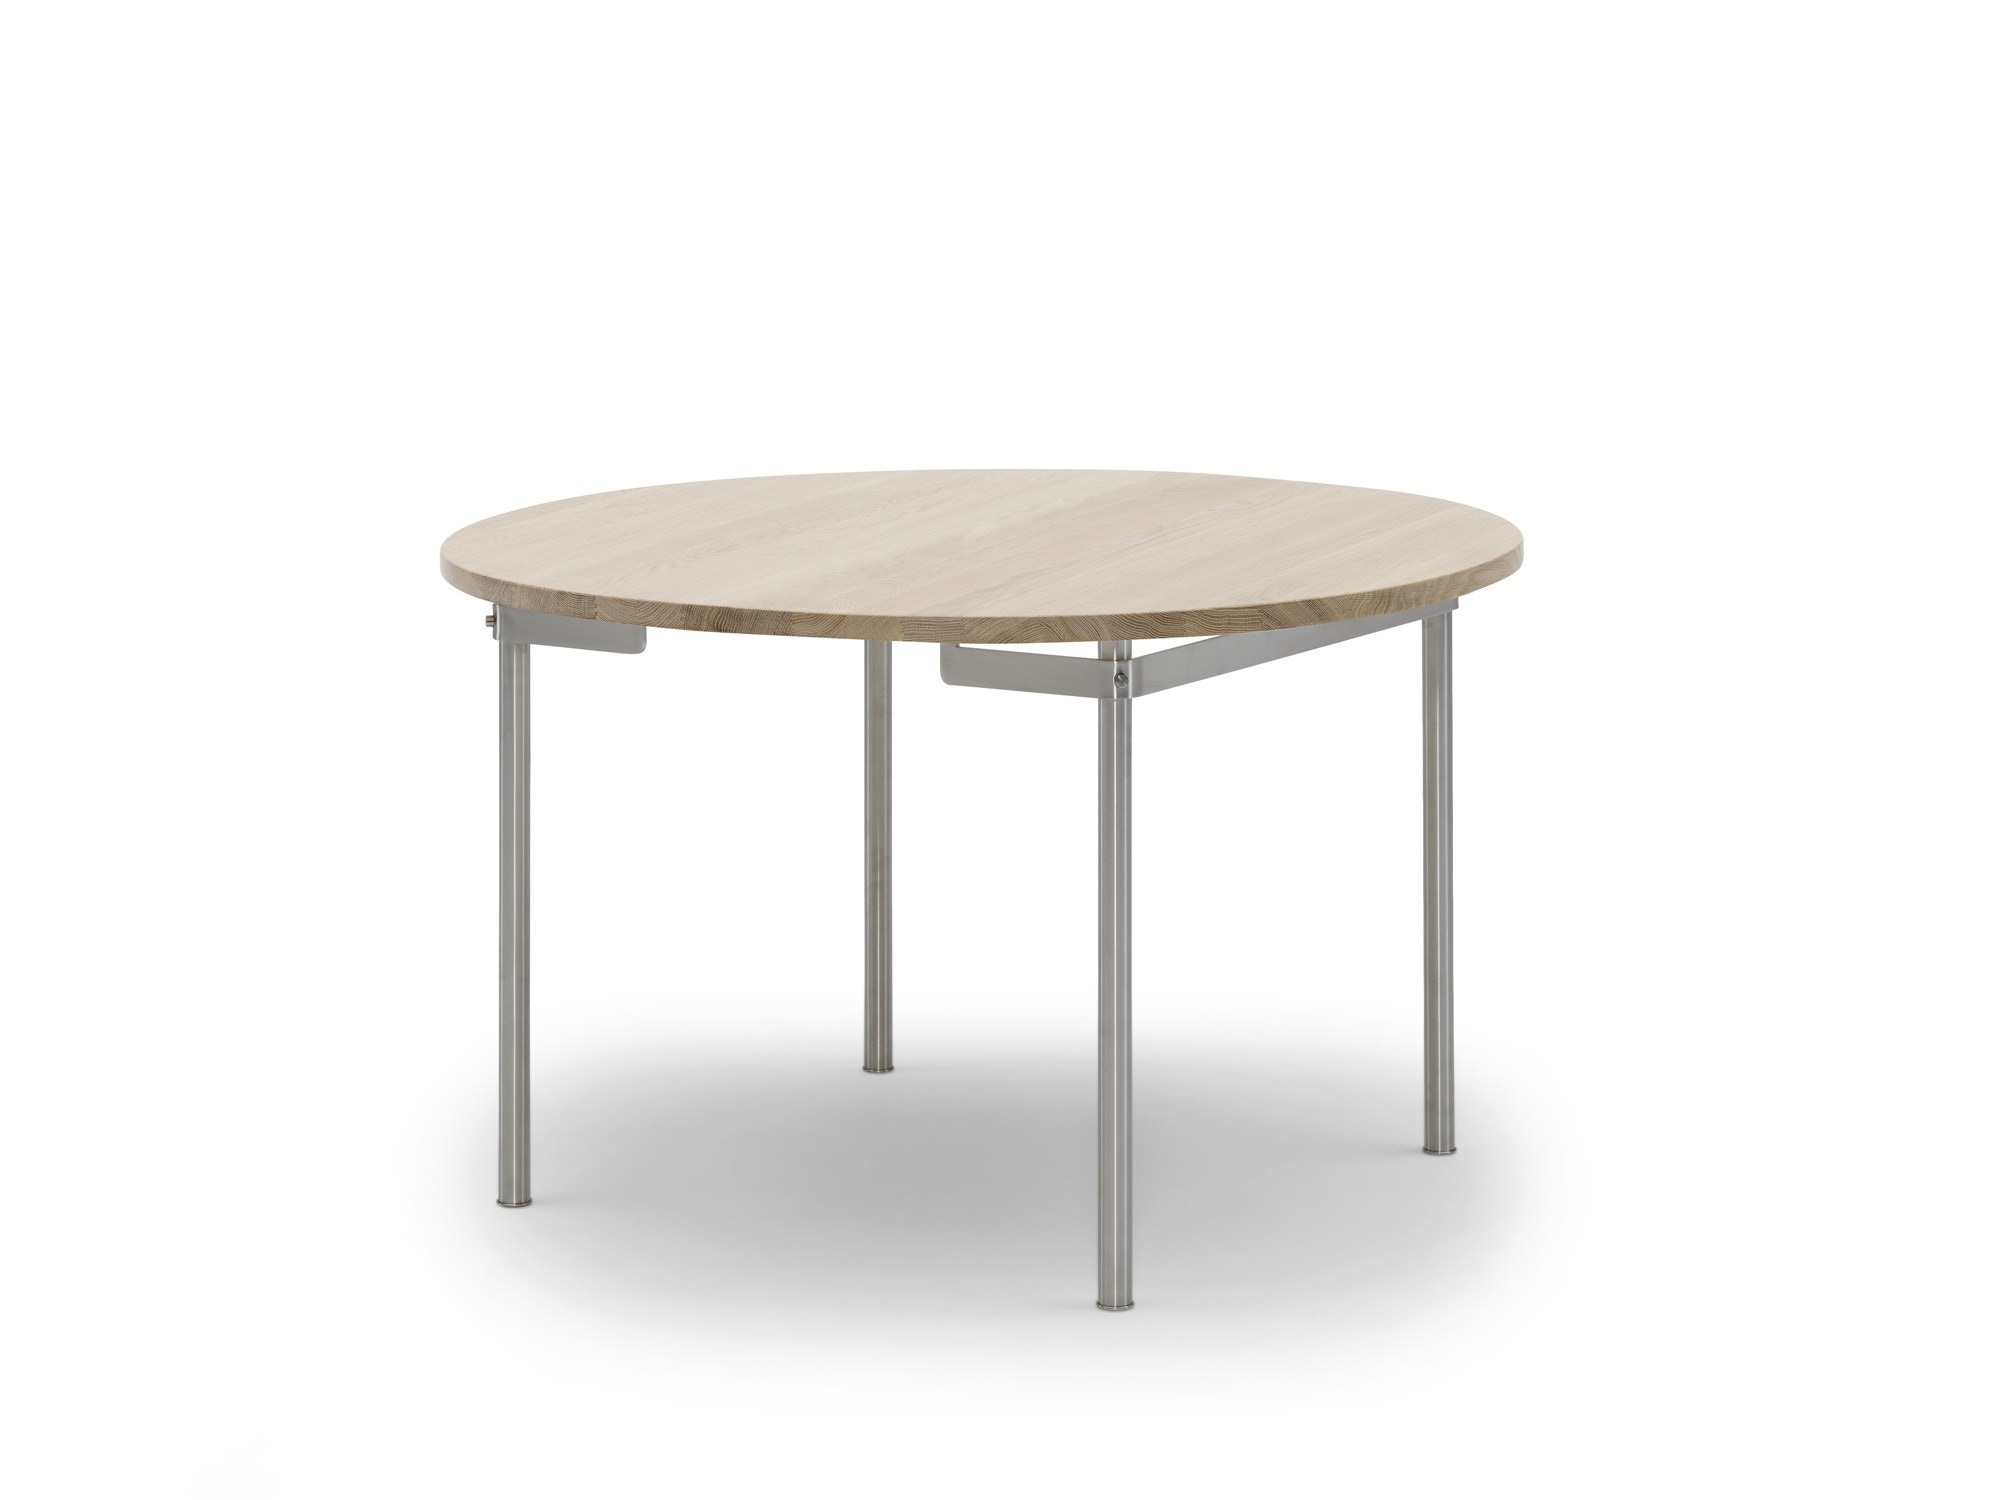 Carl Hansen & Son CH388 Table (Expandable with 1 or 2 Leaves)